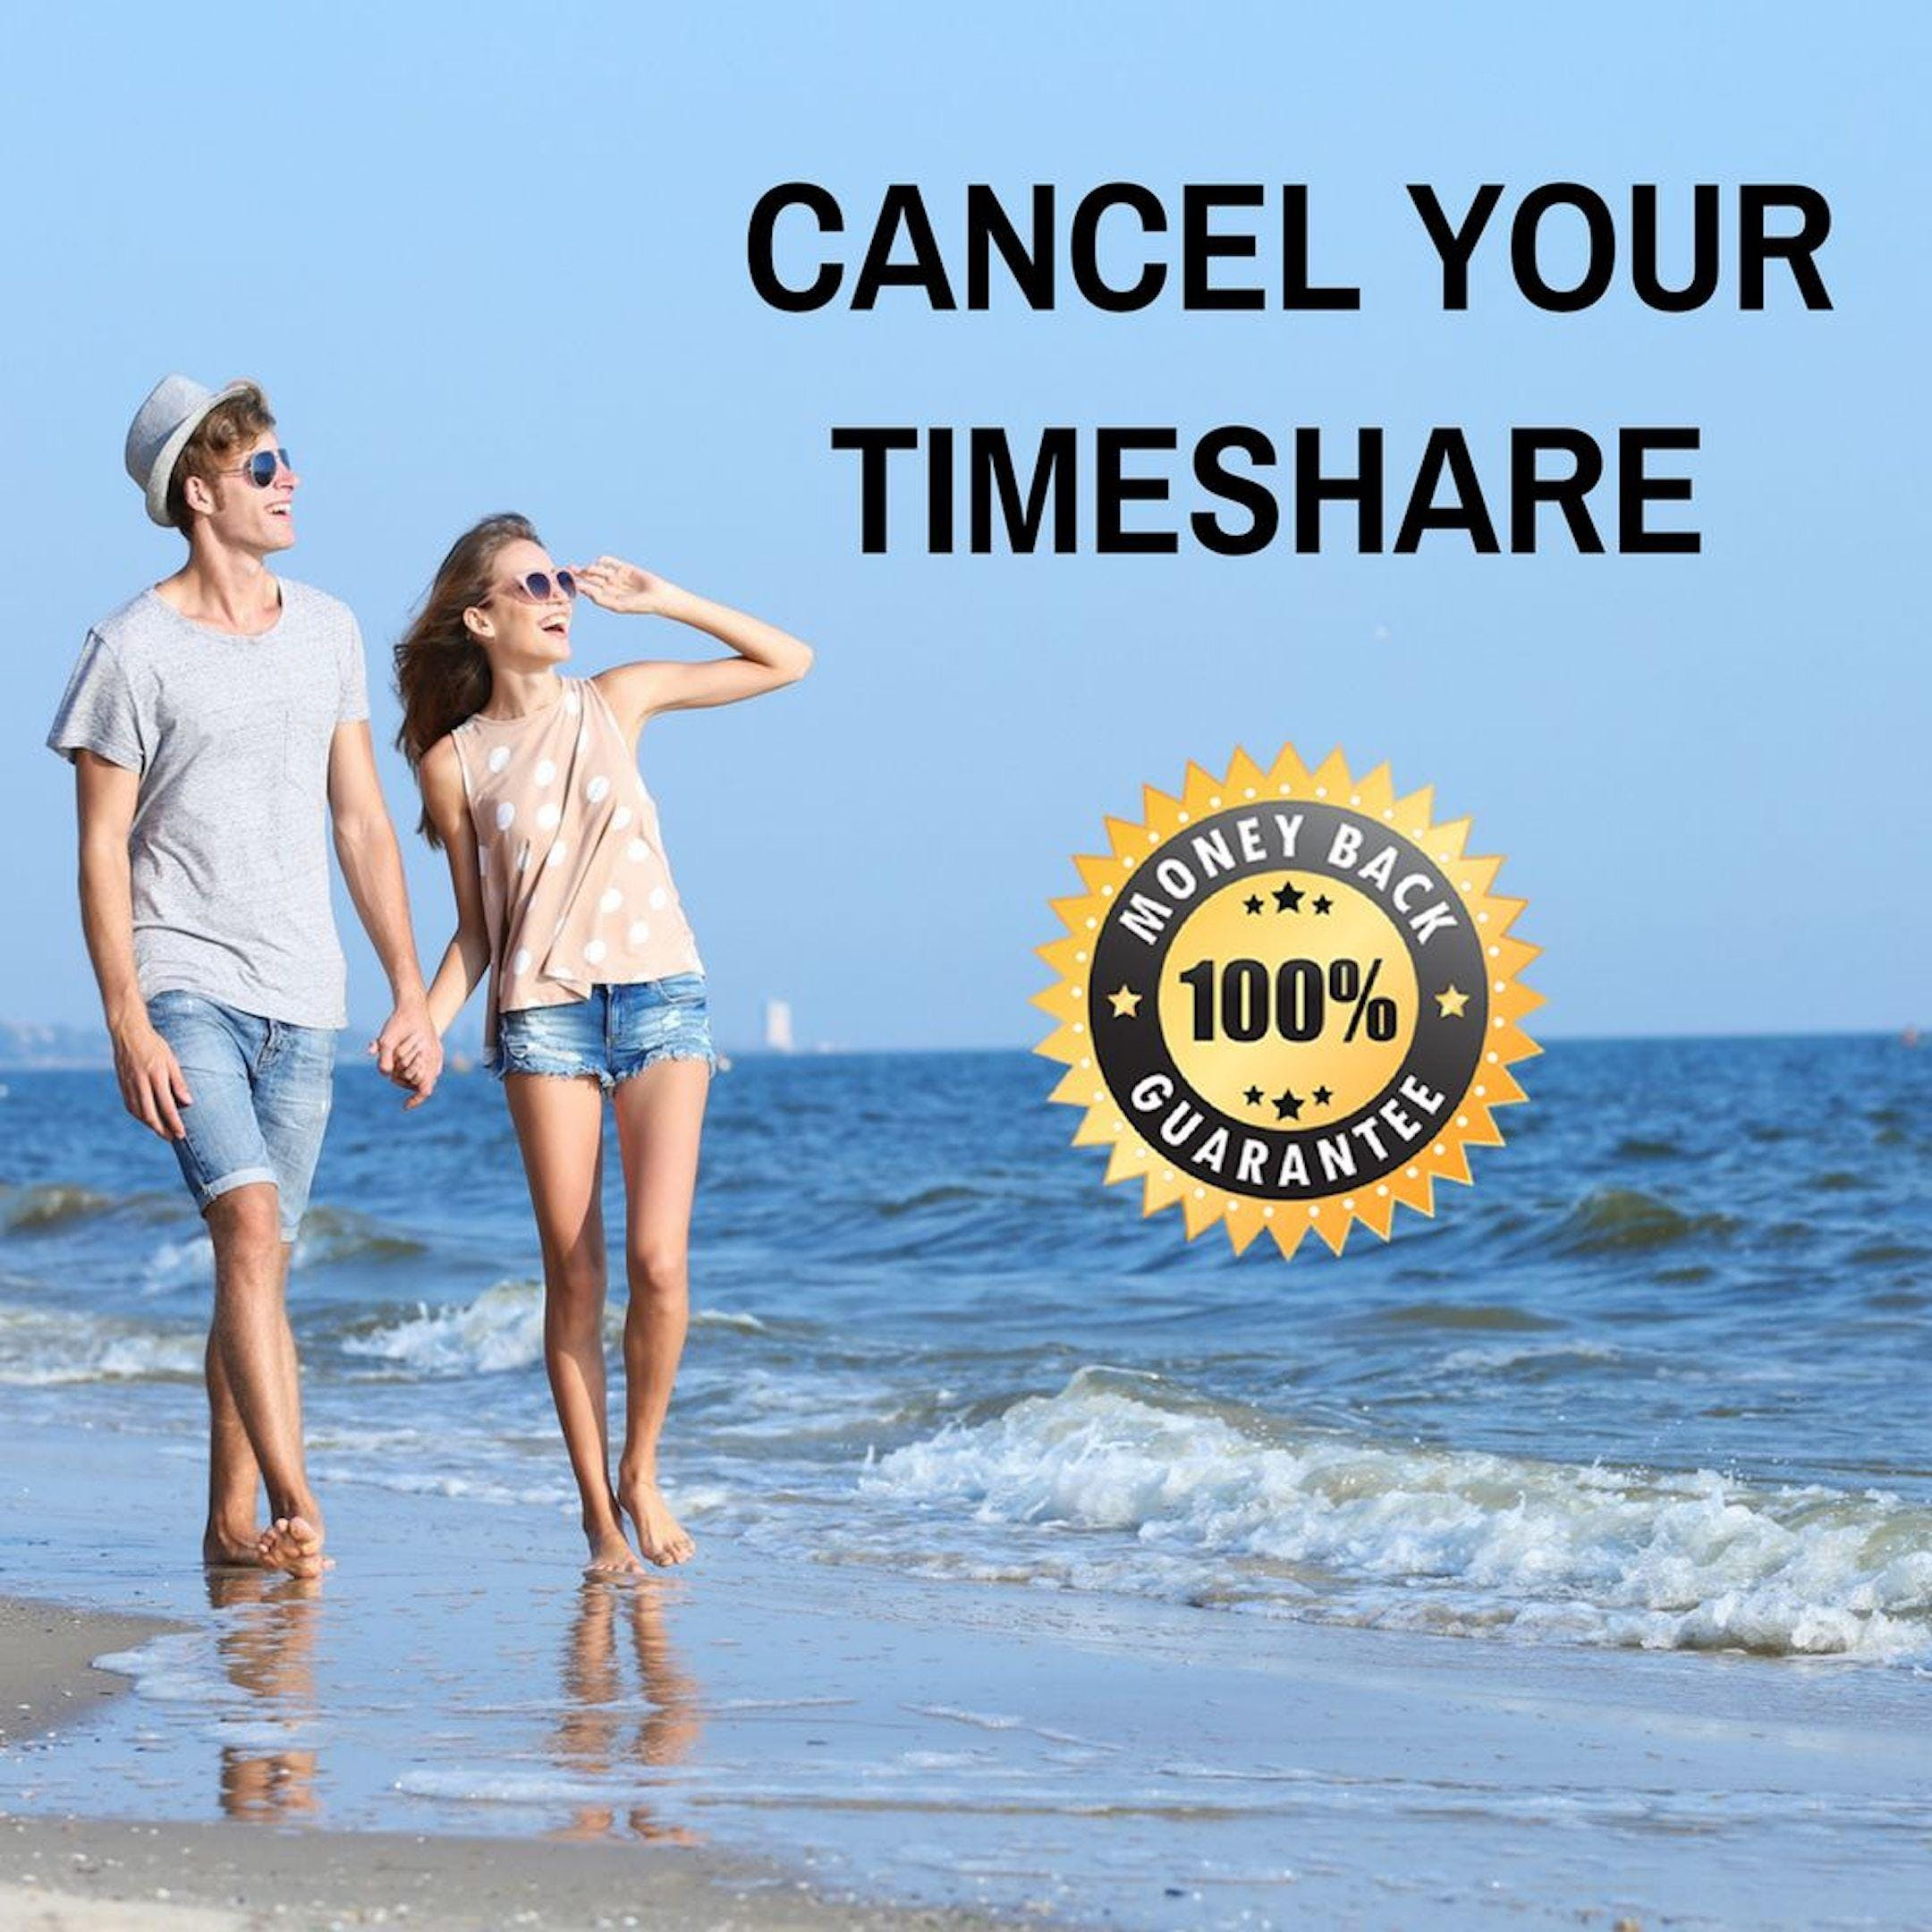 Get Out of Timeshare Contract Workshop Atlantic City, New Jersey